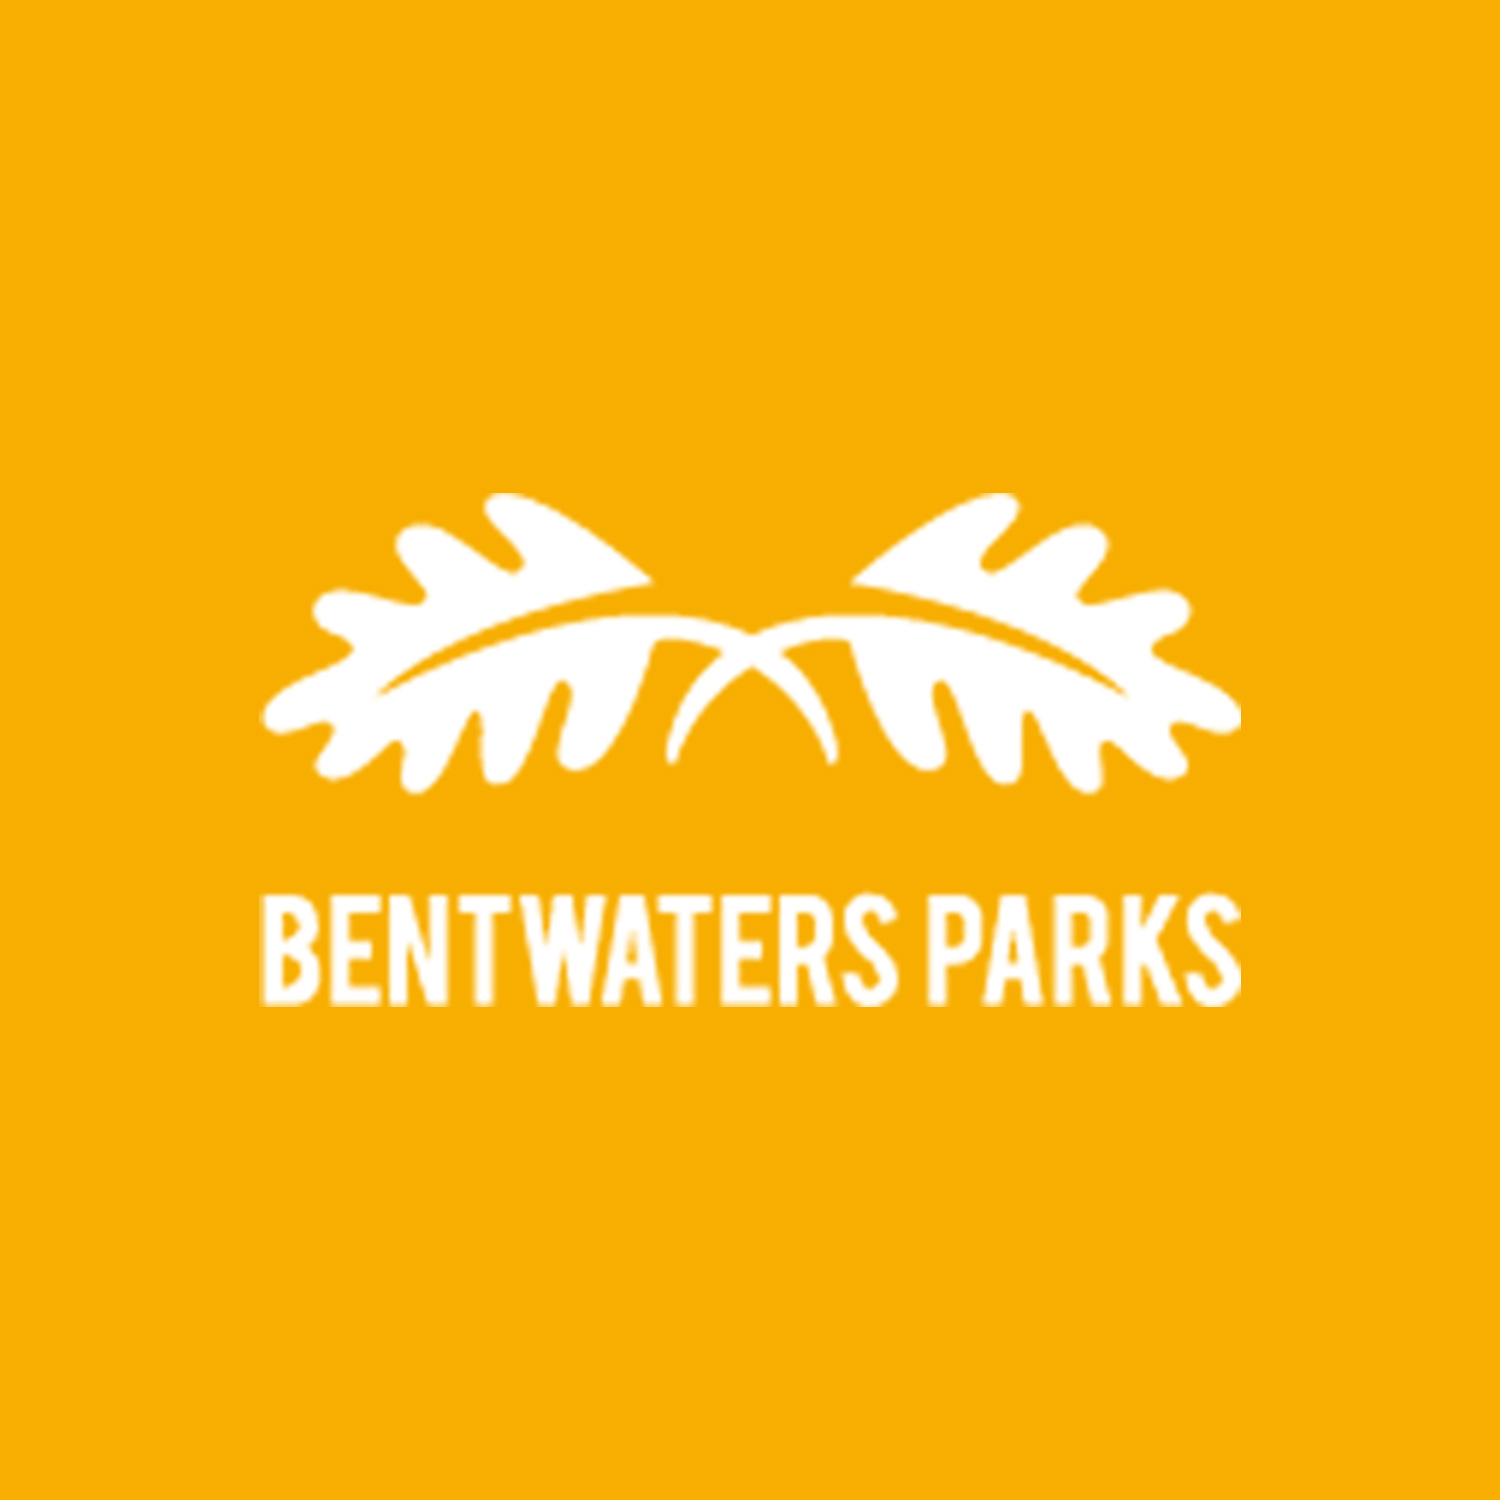 Bentwaters Parks logo